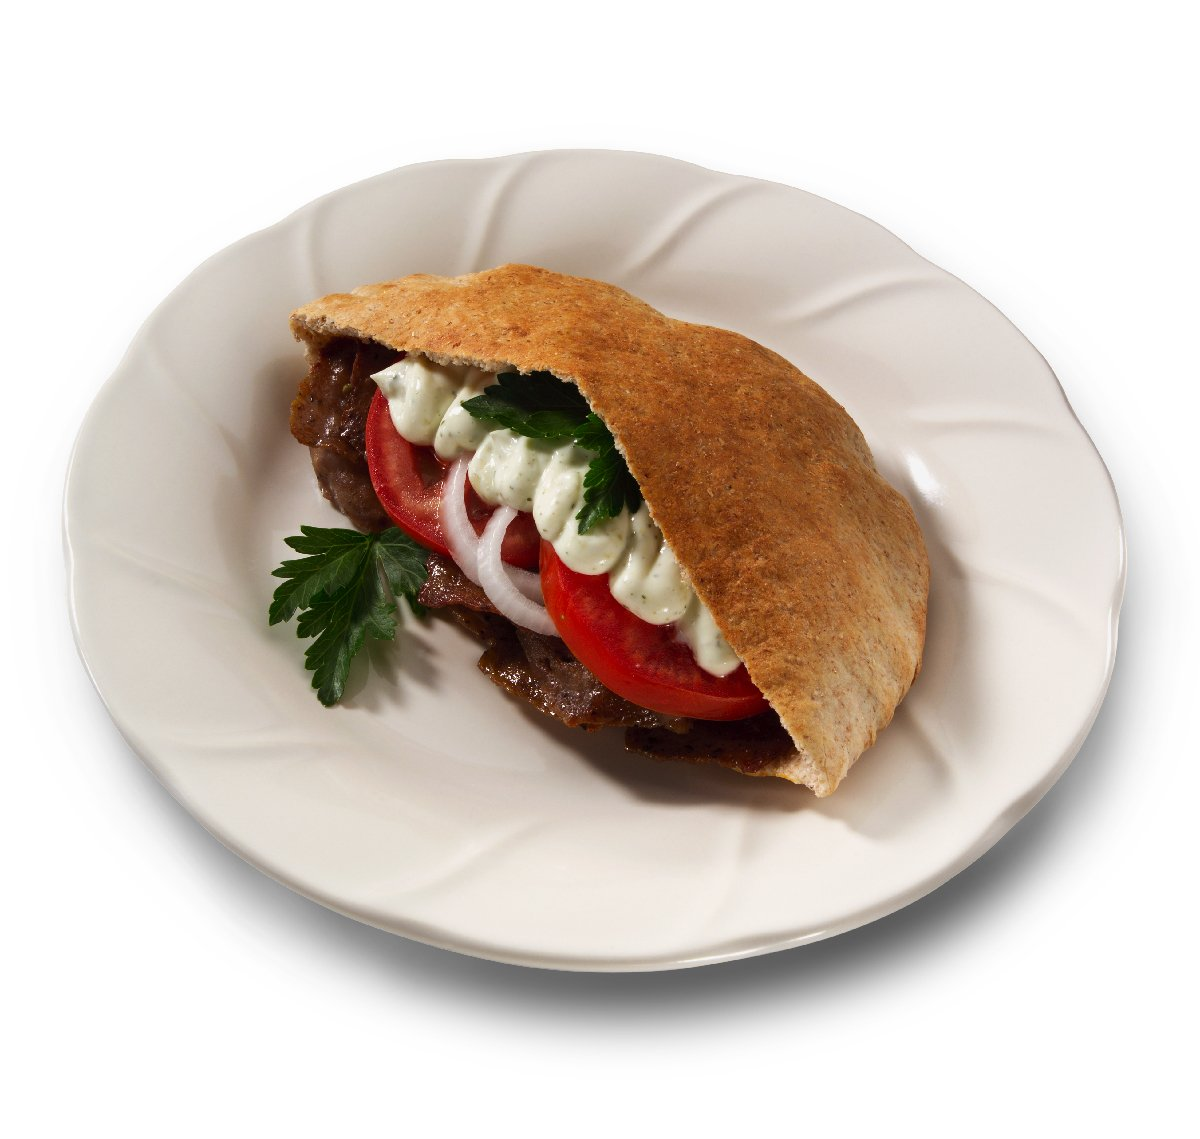 Halal Beef and Lamb Gyro by Midamar - Fully Cooked, seasoned and sliced - 10,16 oz packs by Midamar (Image #2)